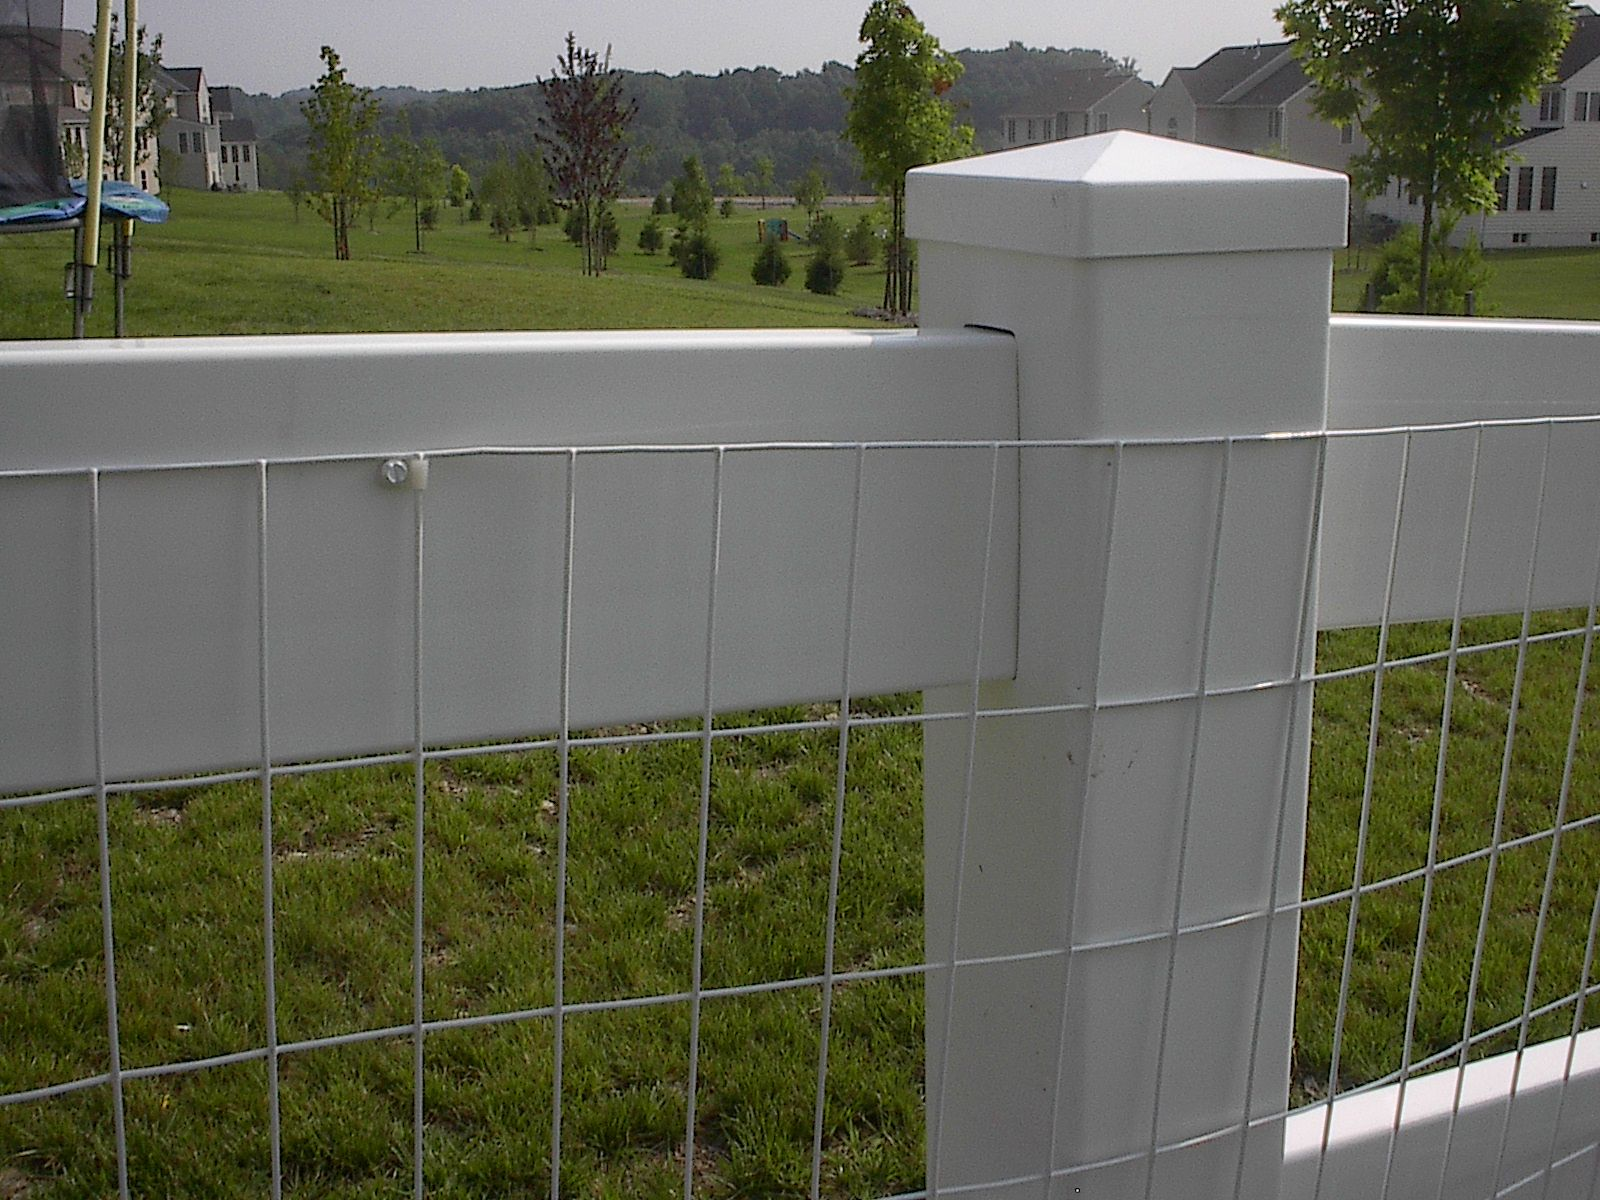 pipe fencing with wire mesh - Google Search | dog and horse ...